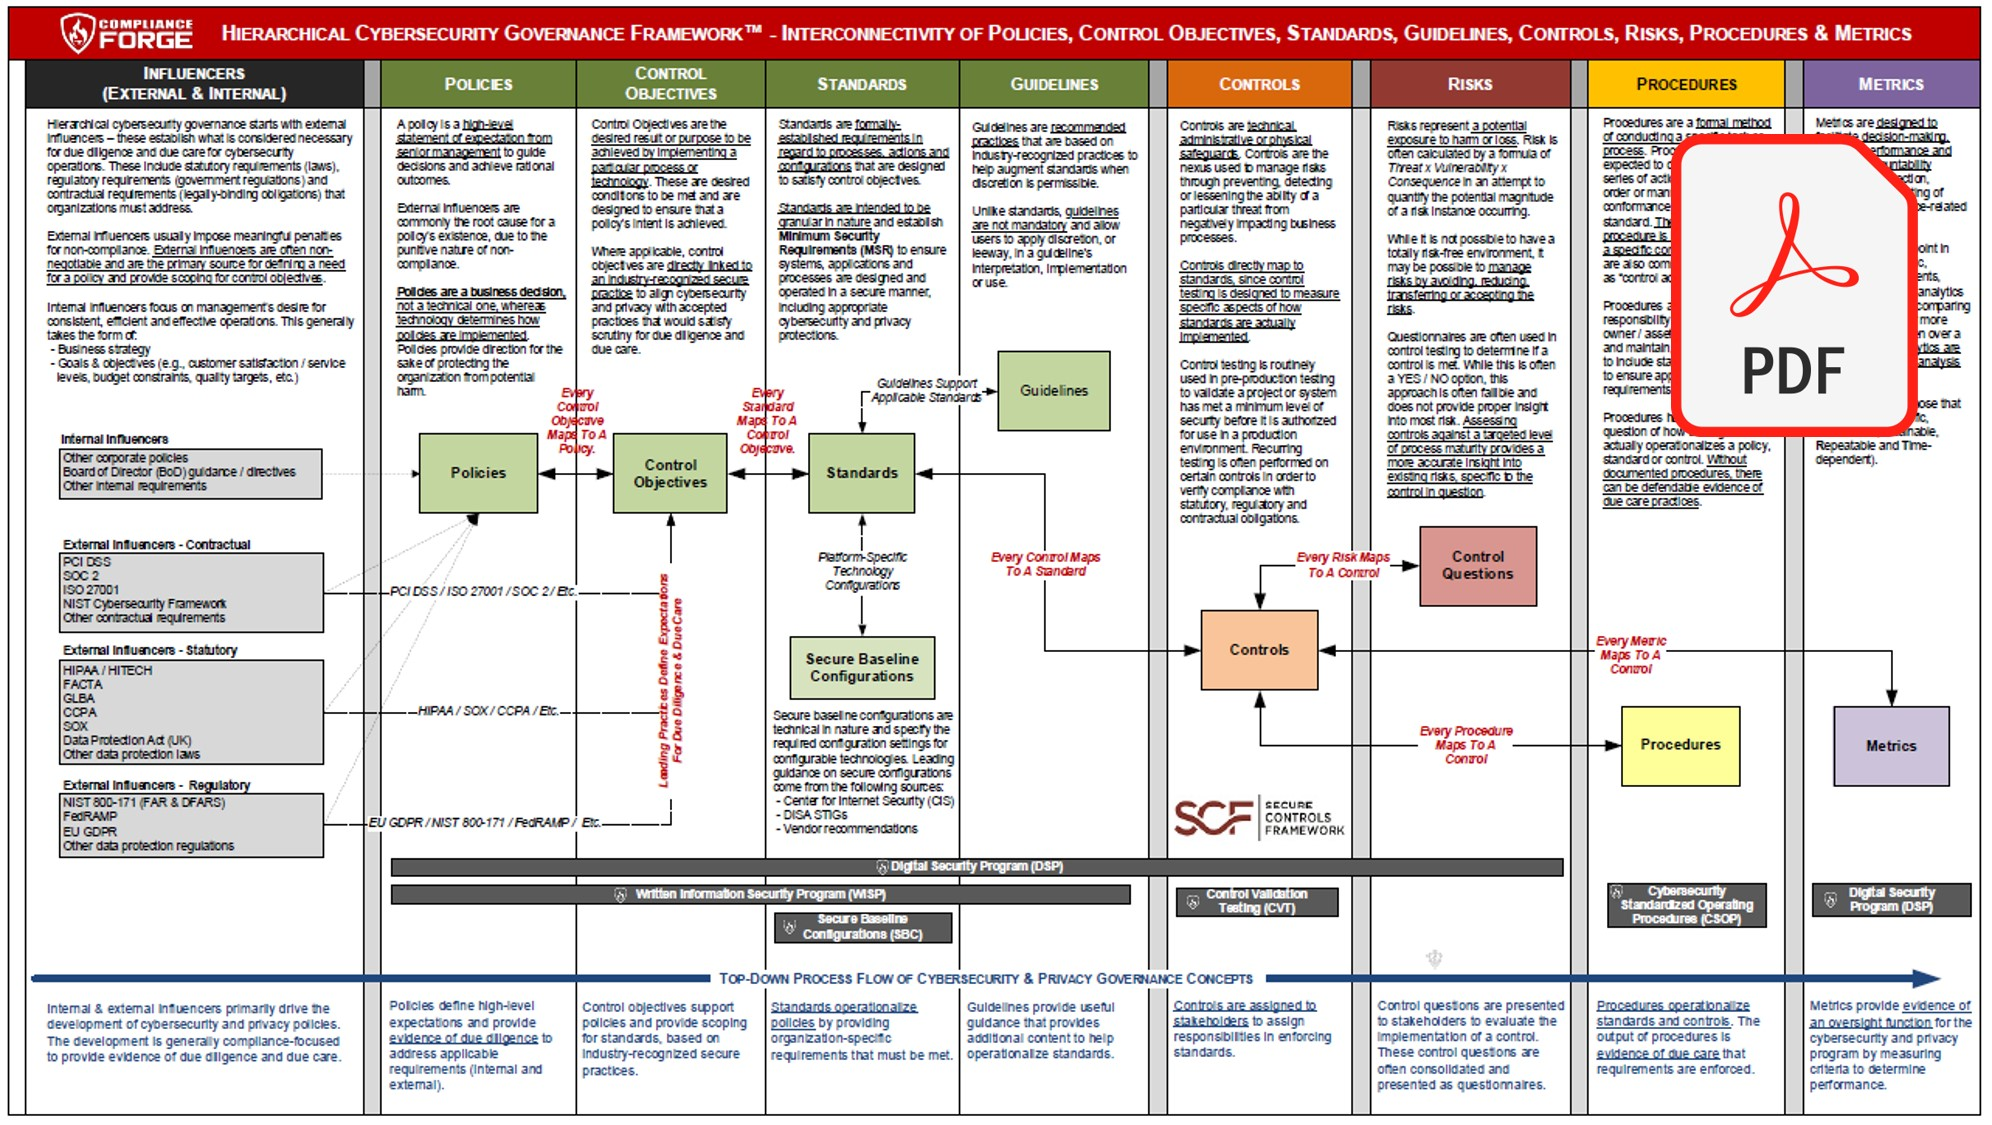 2020-hierarchical-cybersecurity-governance-framework.jpg